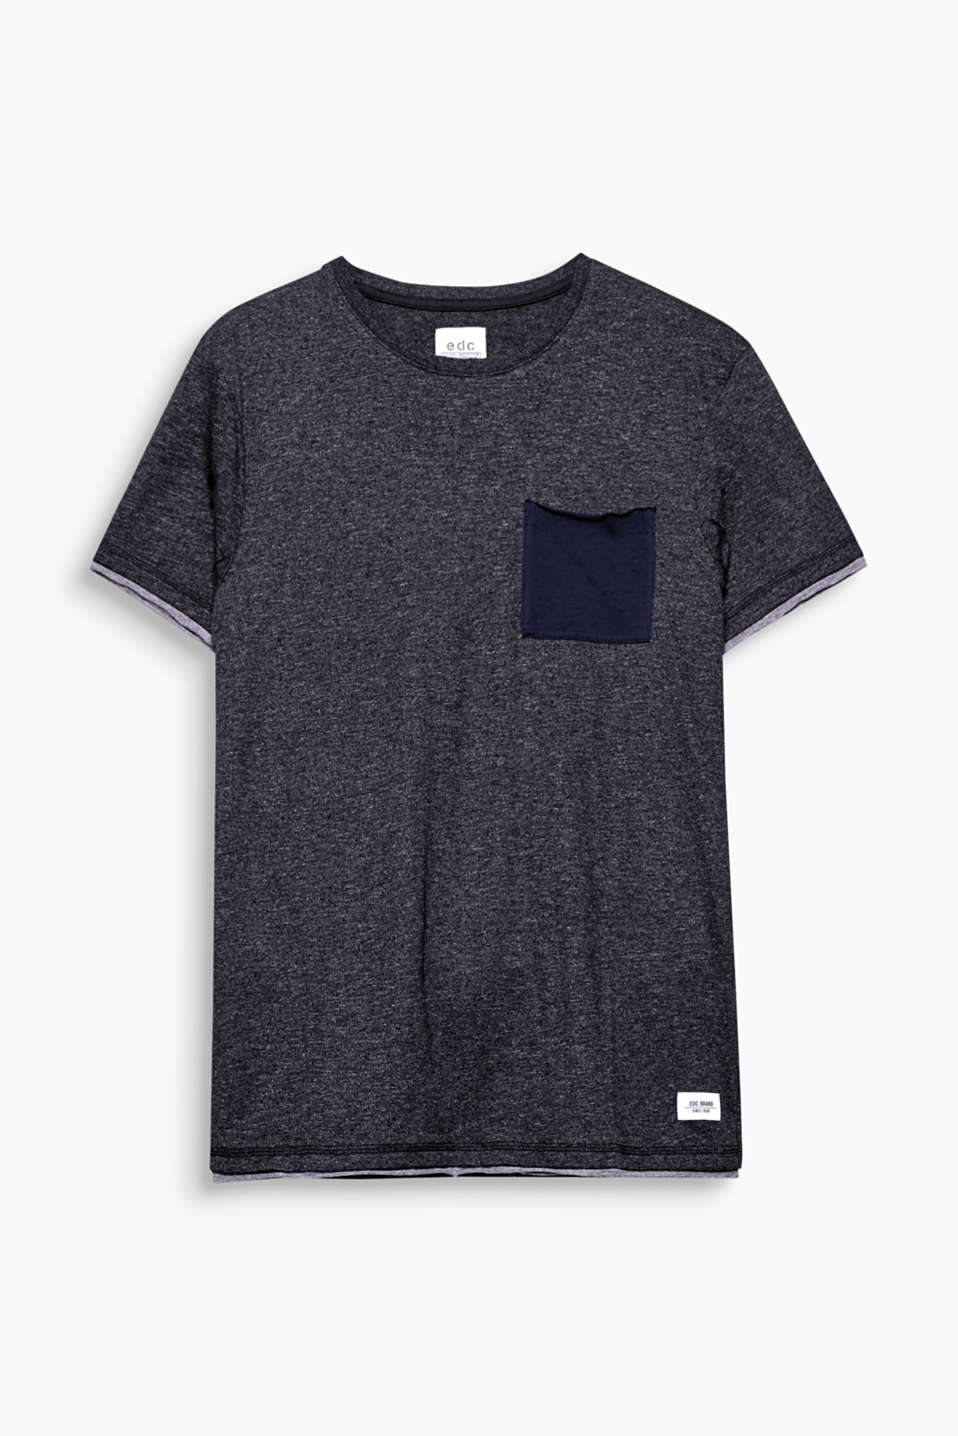 This layered-effect T-shirt made of soft blended cotton is a sporty, fashion essential